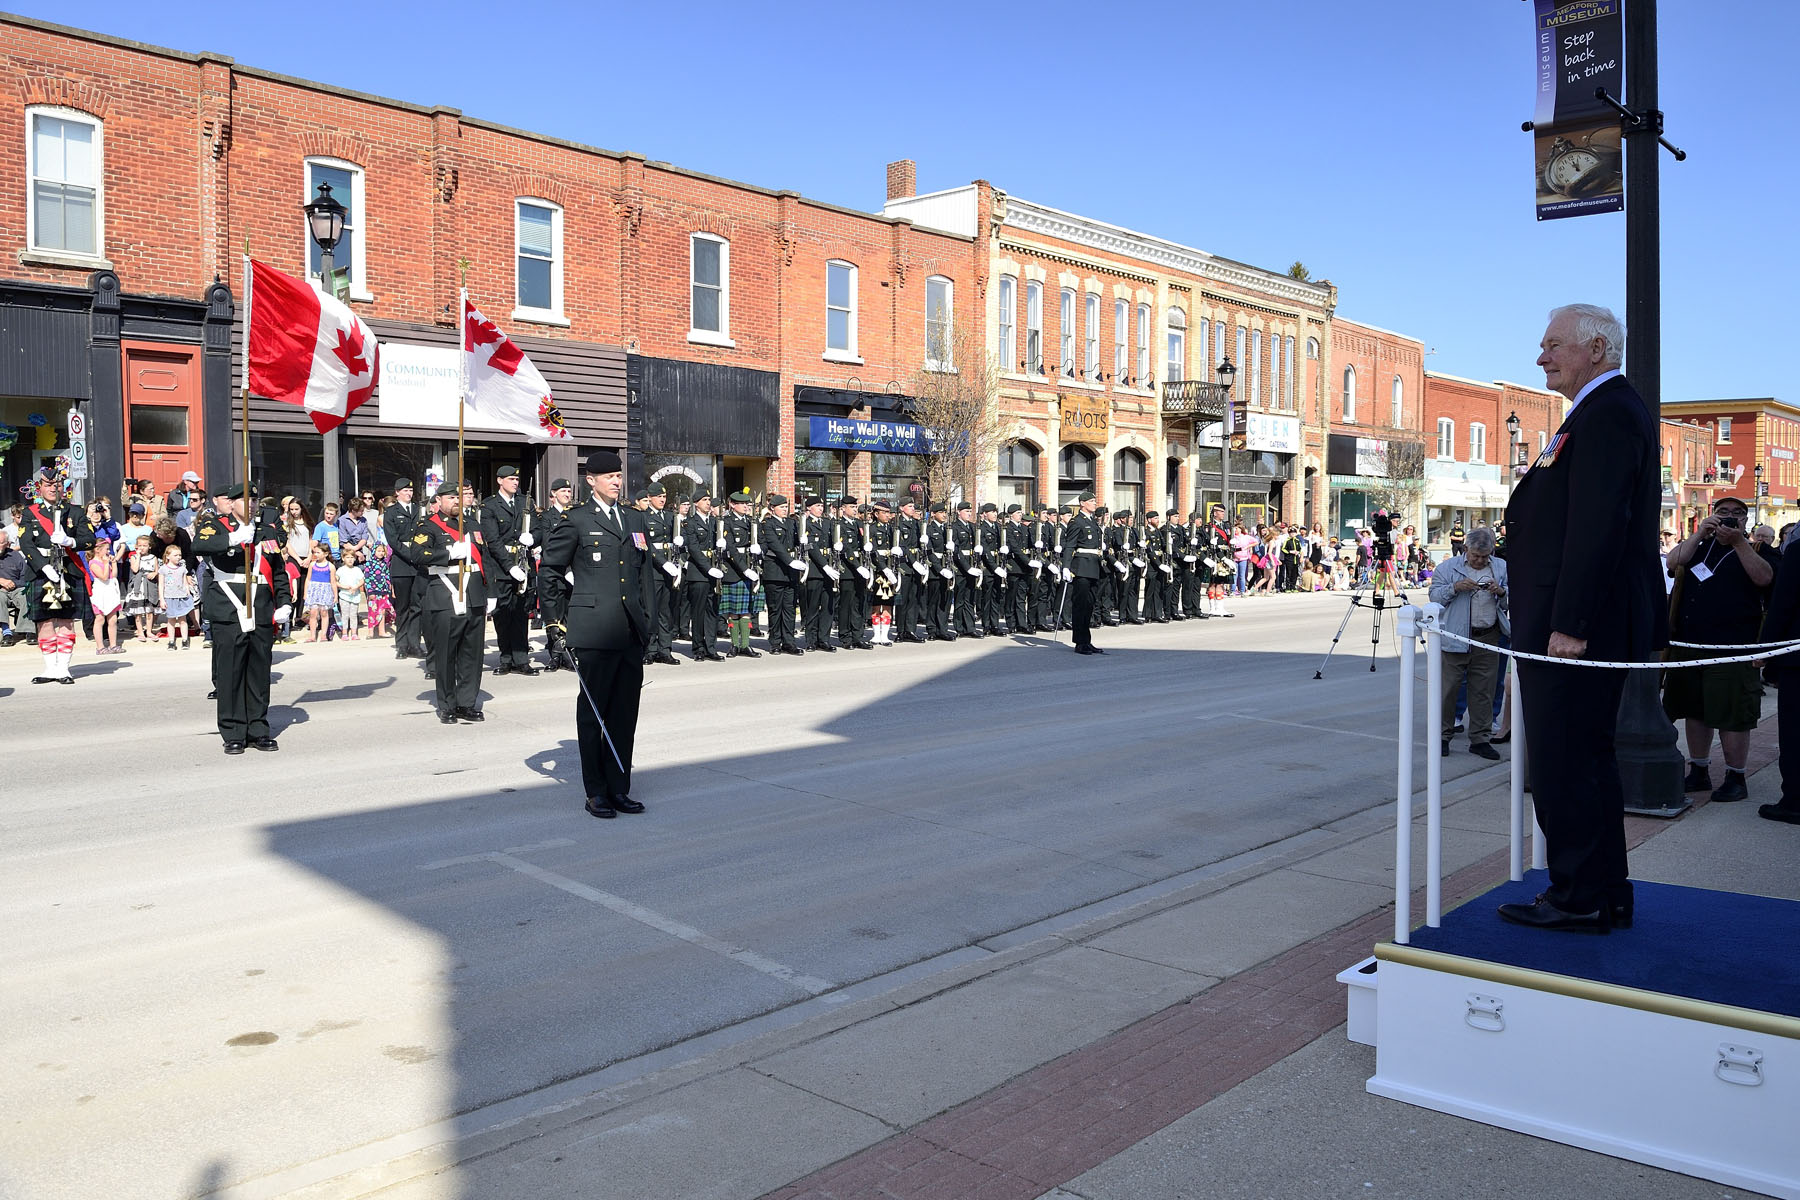 In Meaford, His Excellency was greeted by a guard of honour from the 4th Canadian Division Training Centre.